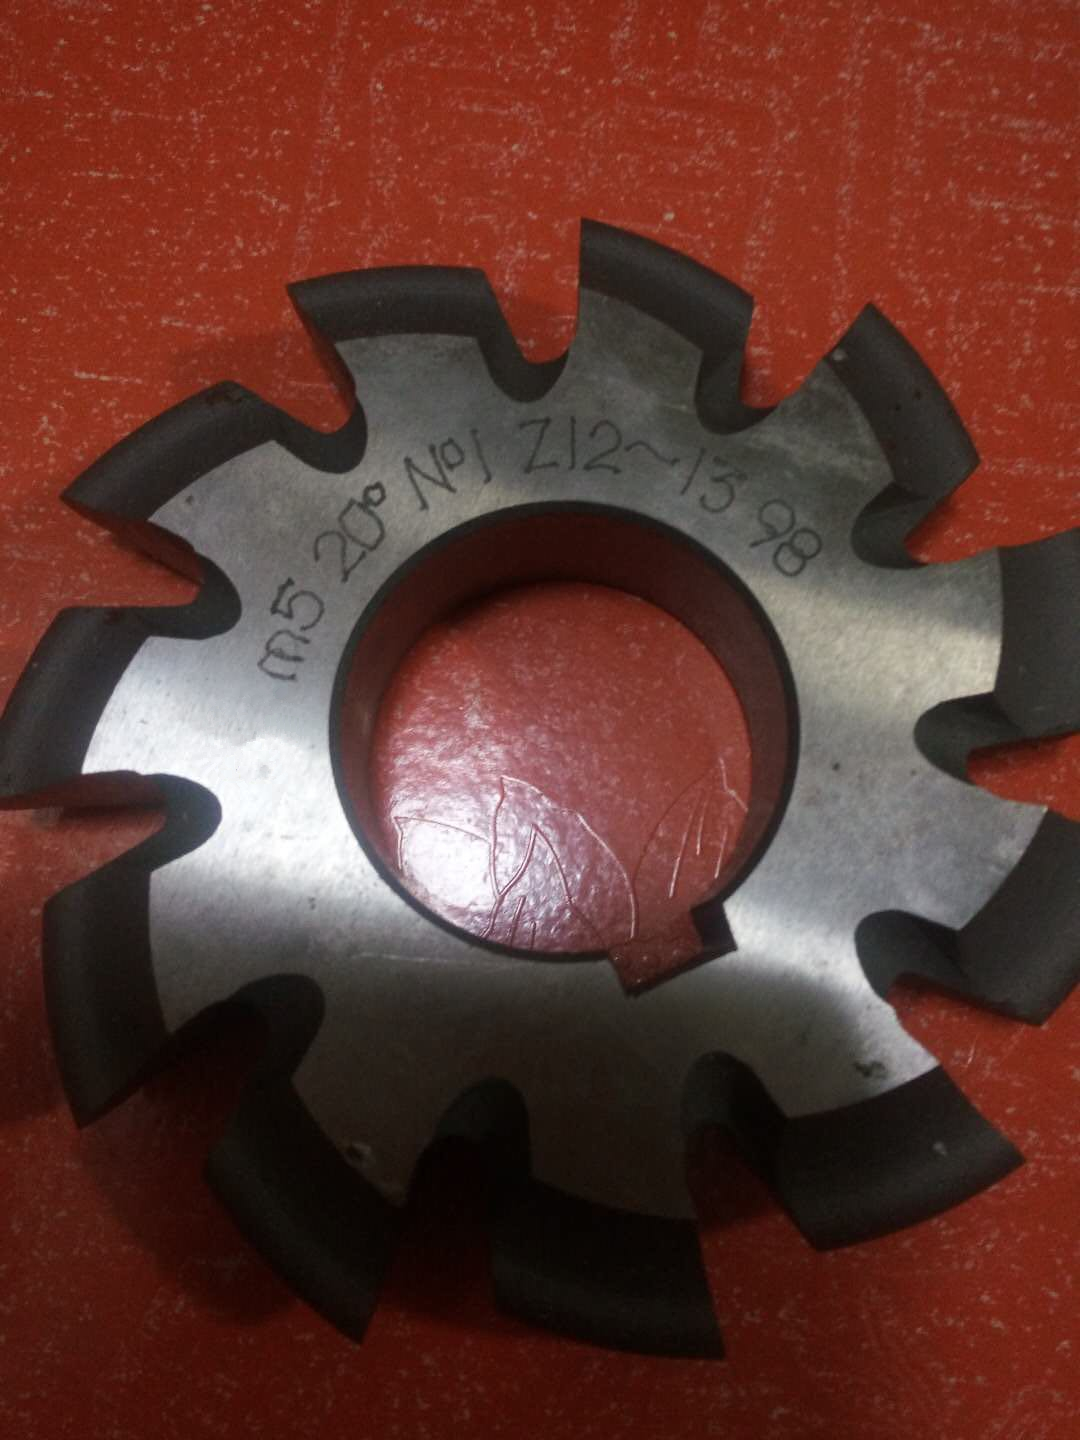 1PC Sold separately Module 5 PA20 Bore32 1#2#3#4#5#6#7#8# Involute Gear Cutters M5 er16 precision spring collet for cnc milling lathe tool 1 5 2 5 3 5 4 5 5 5 6 5 7 5 8 5 9 5 10 5 3 175 6 35 mm